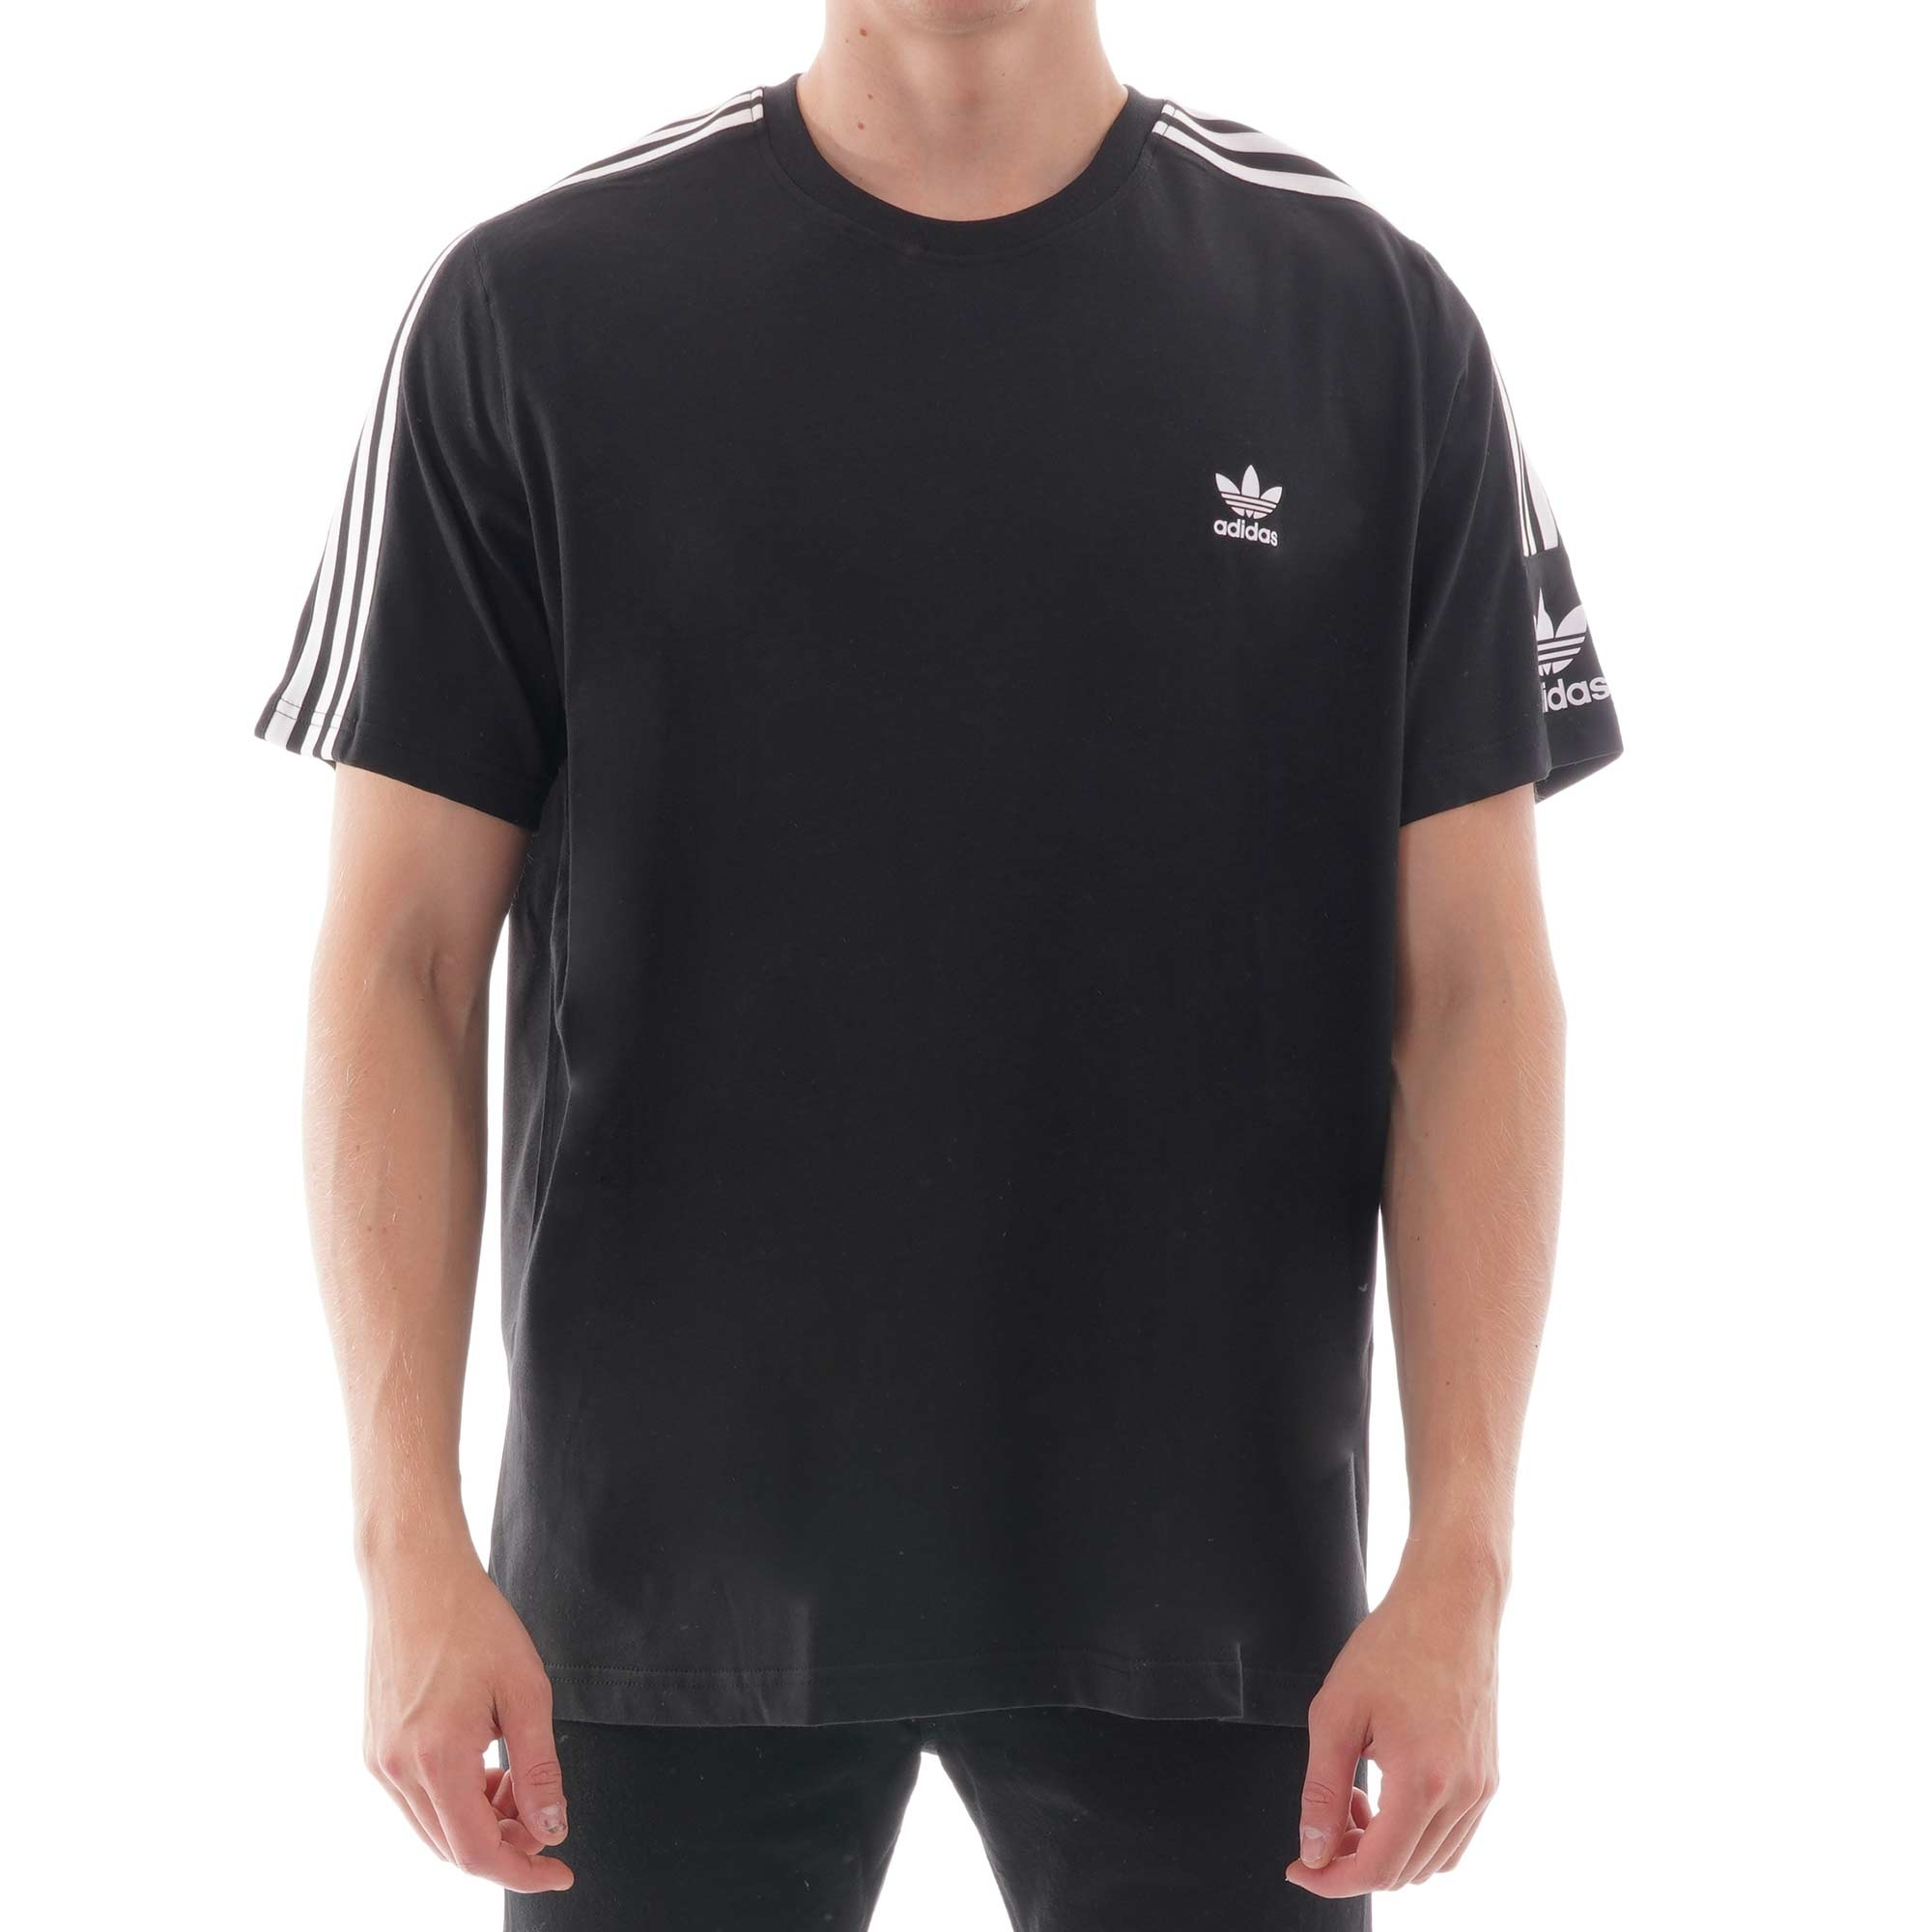 adidas 3 stripes tee originals